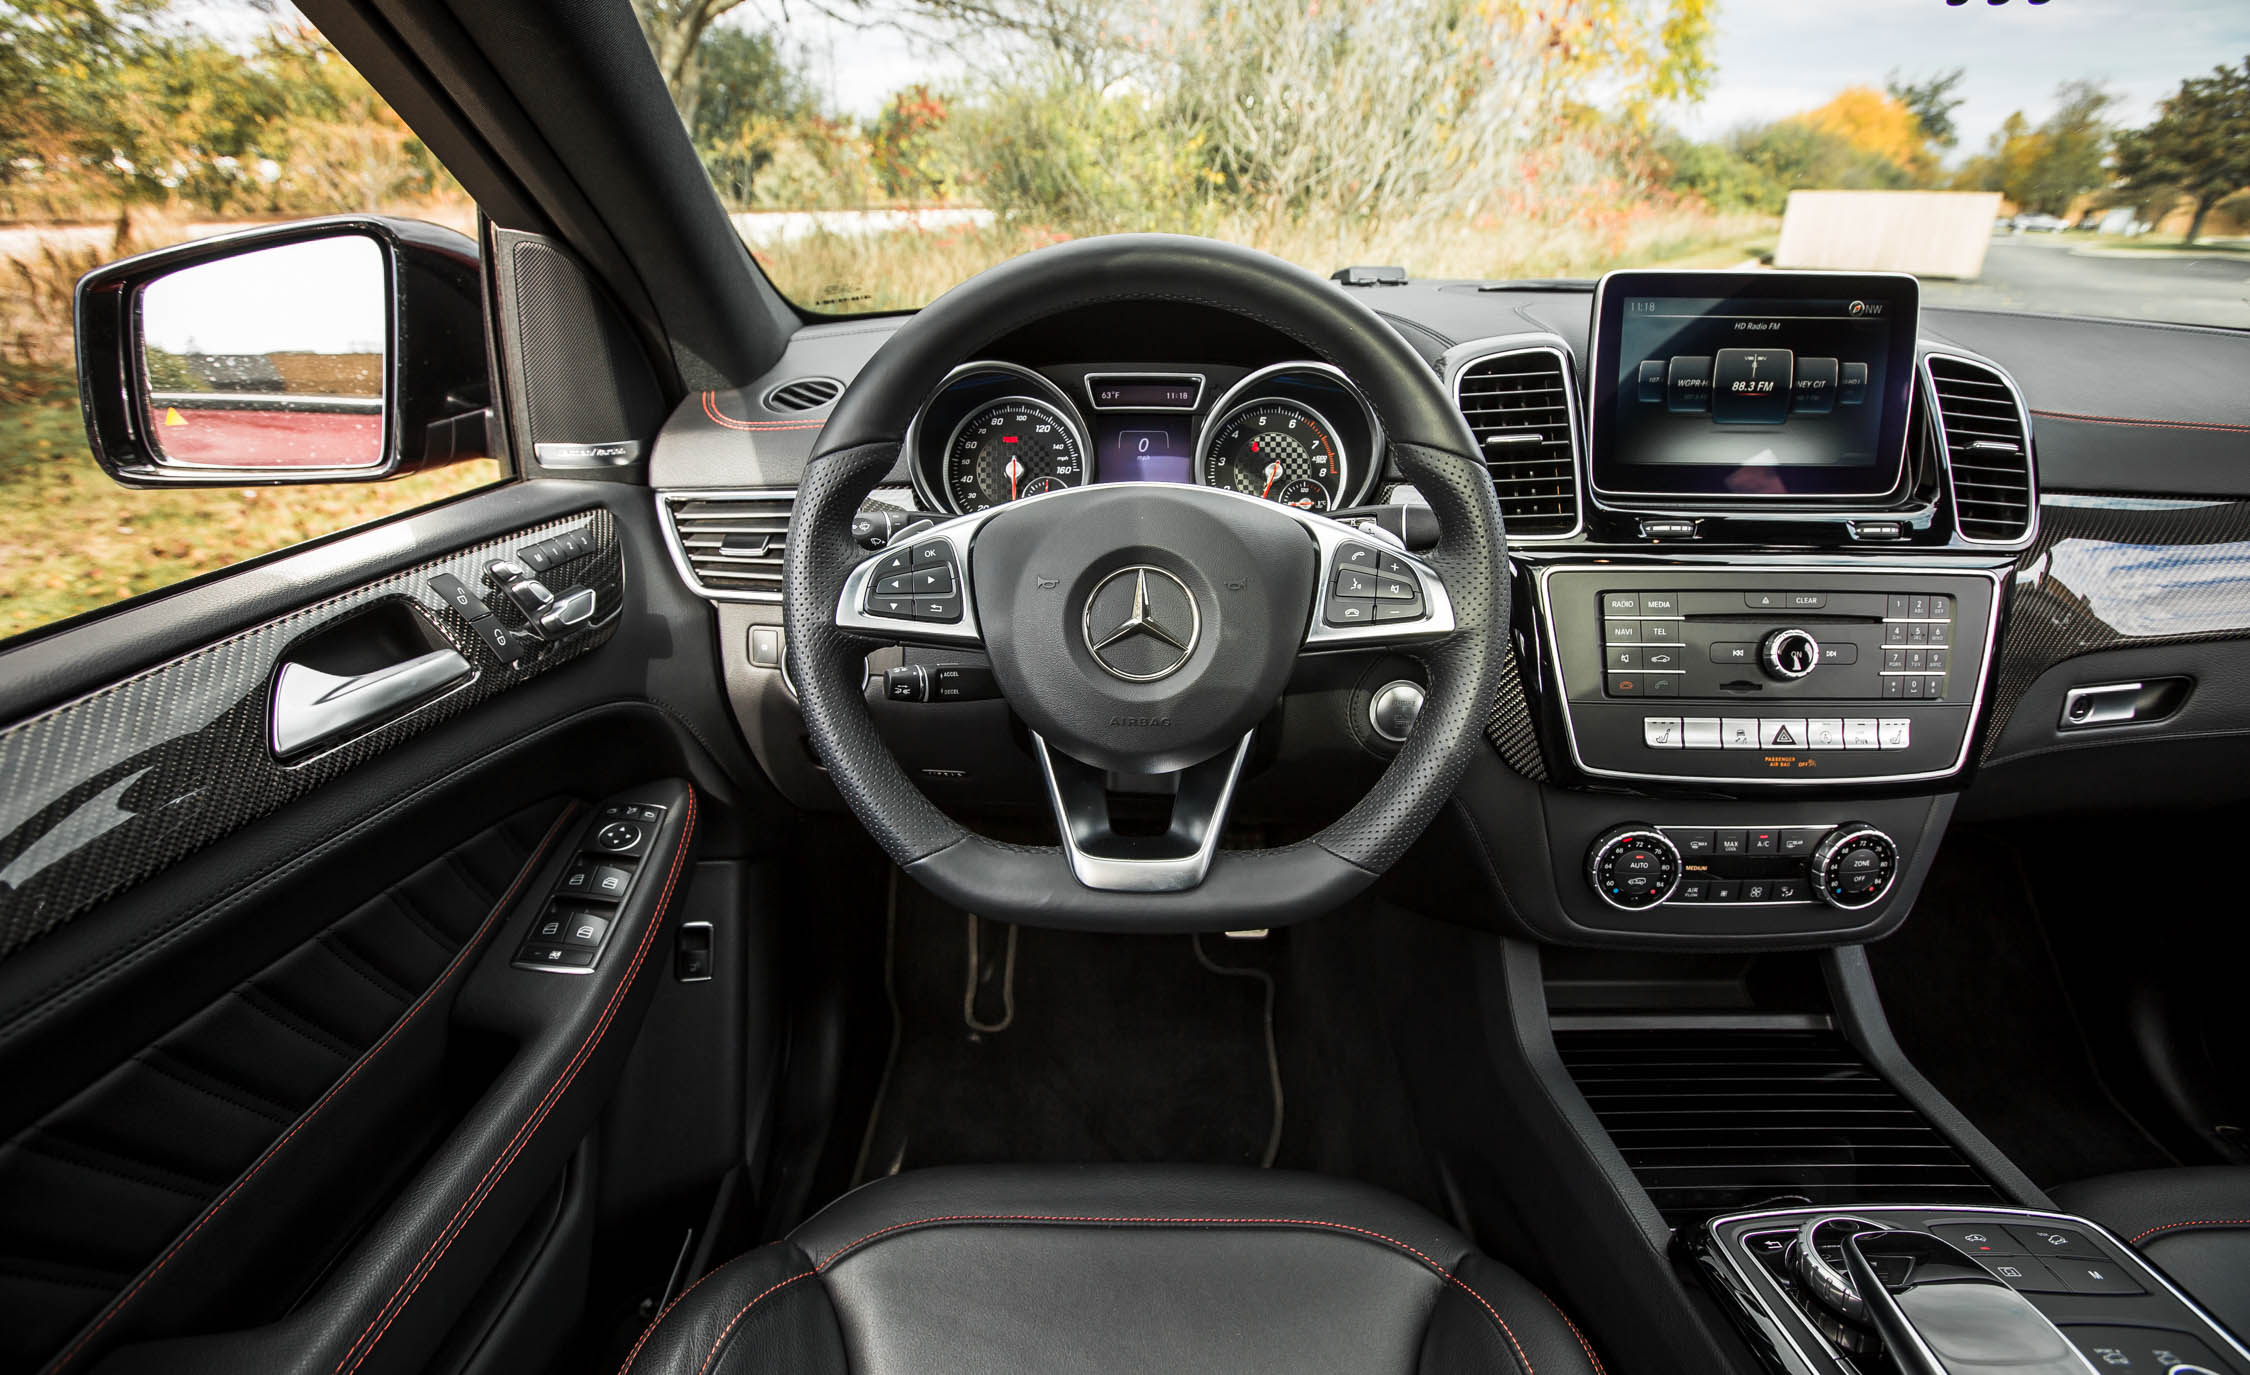 2016 Mercedes-Benz GLE450 AMG Coupe Interior Cockpit